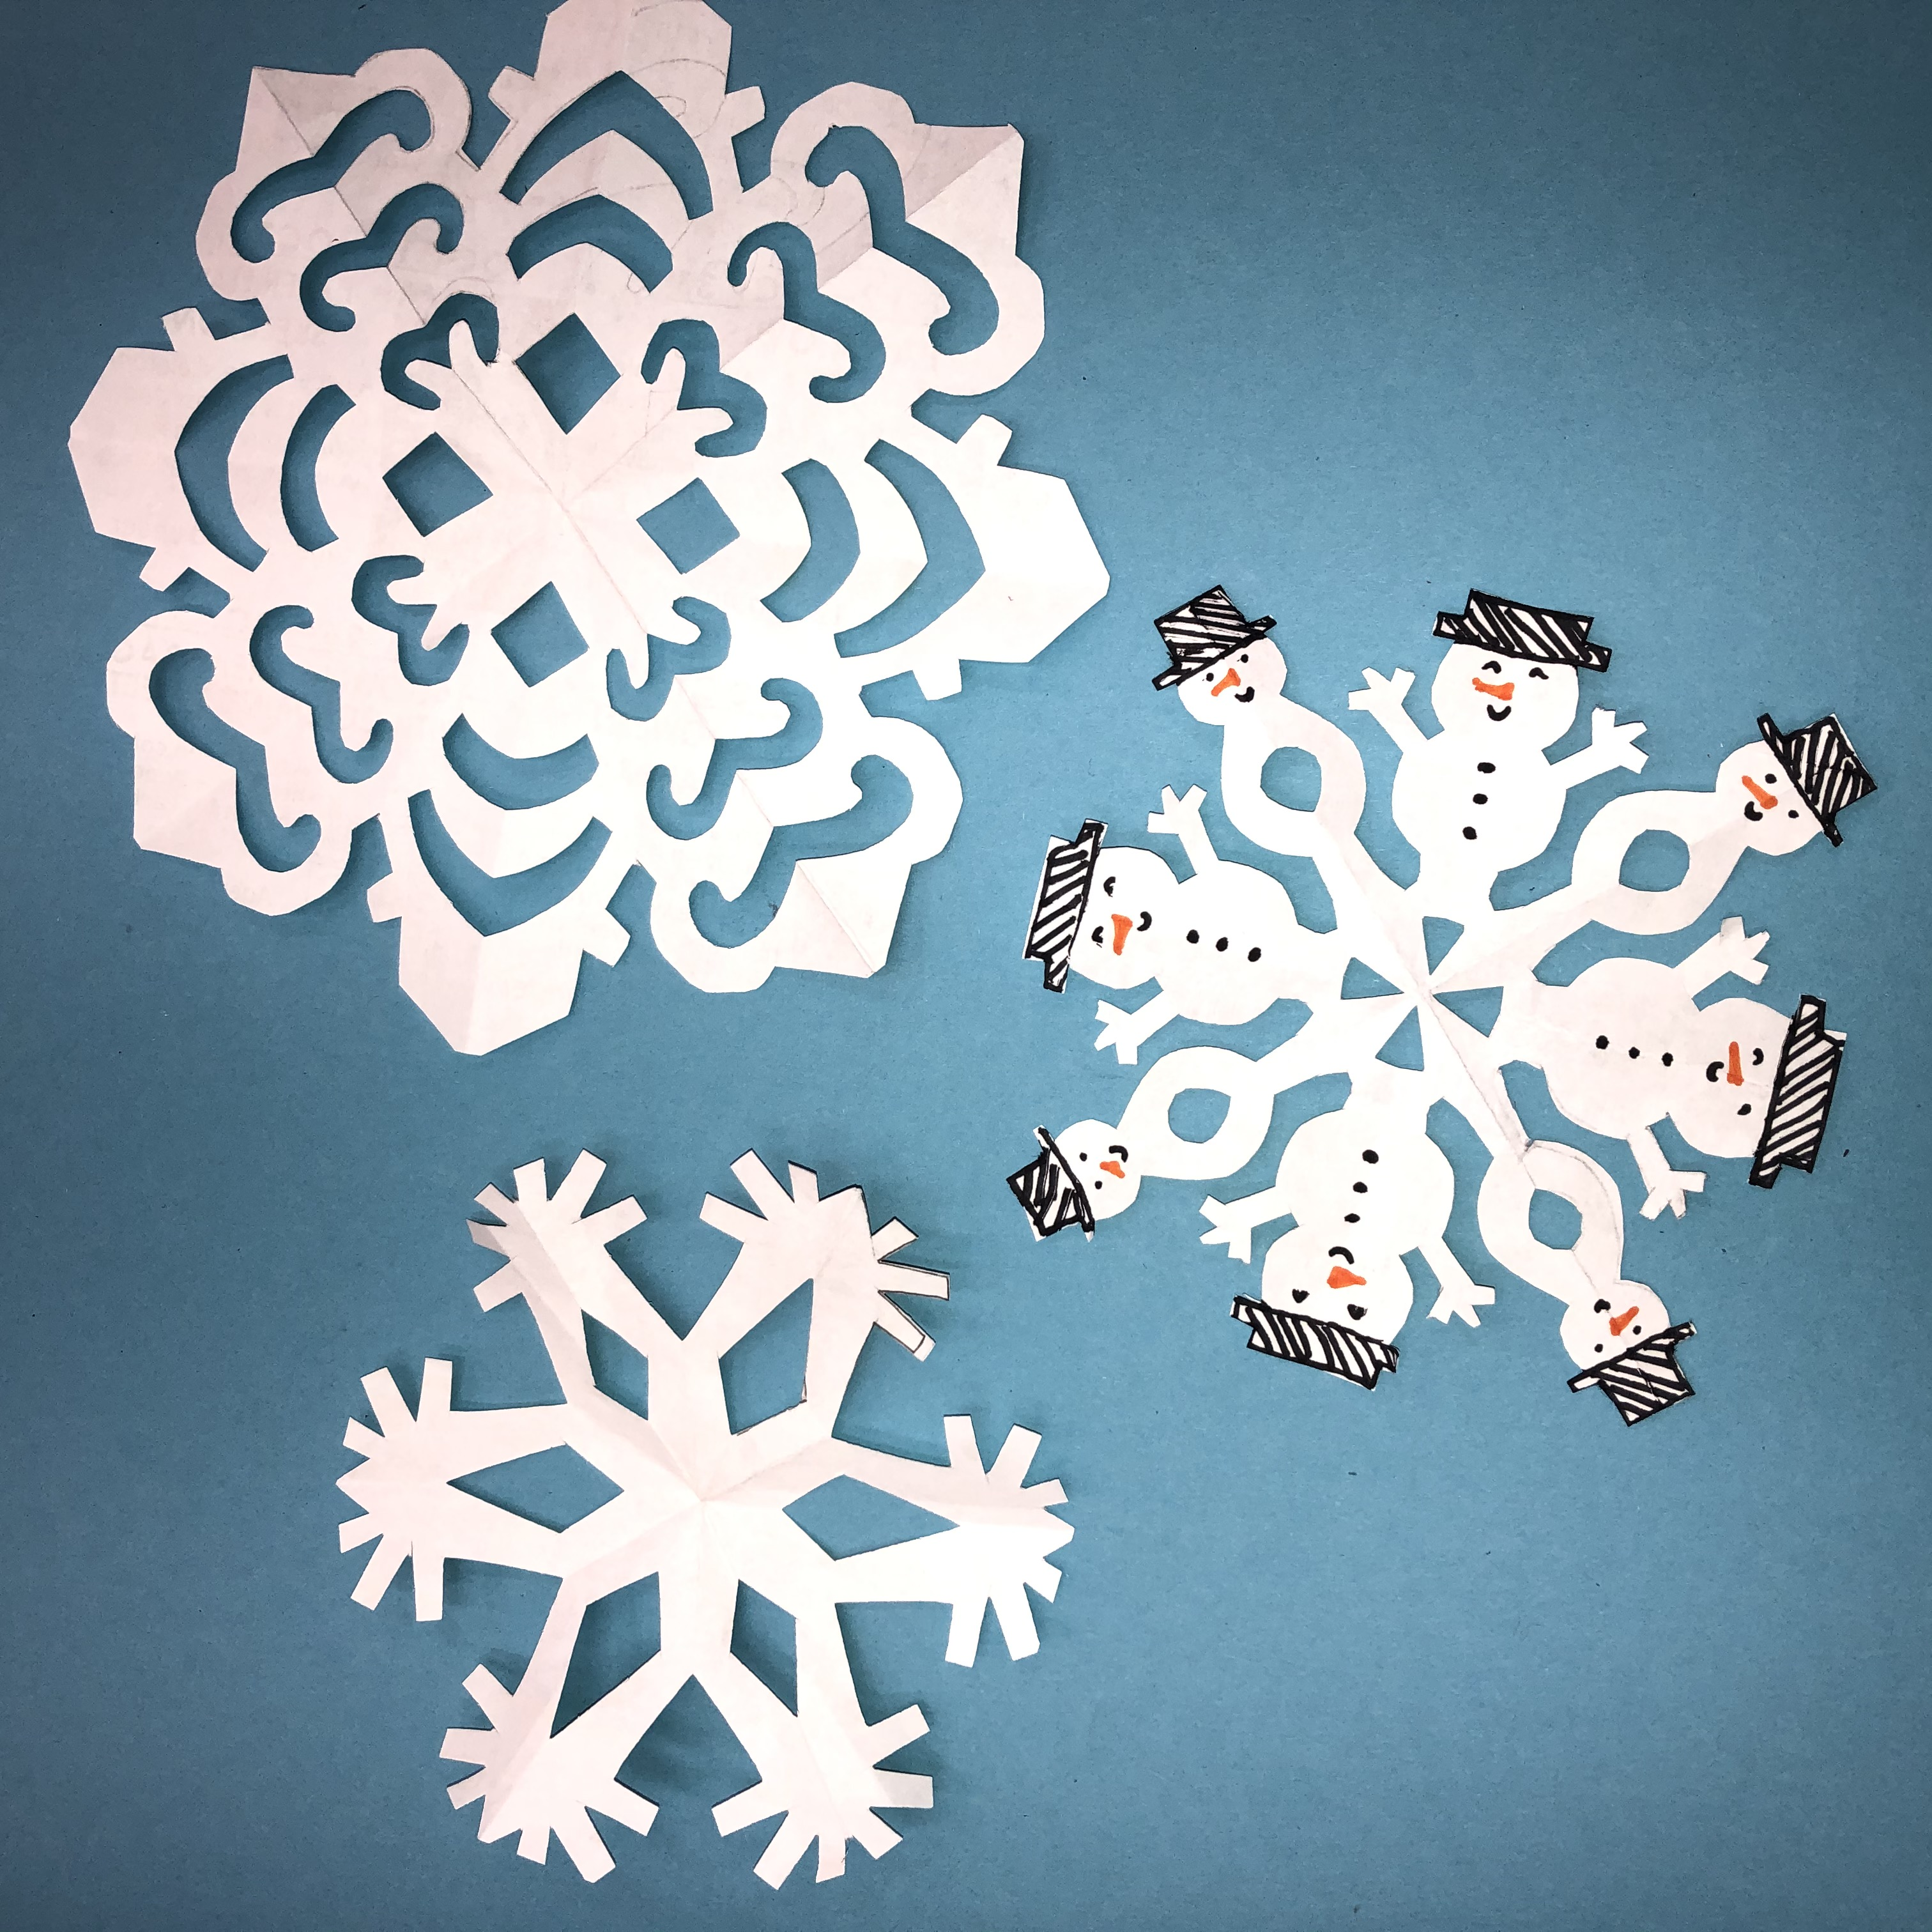 Image of cut paper snowflakes